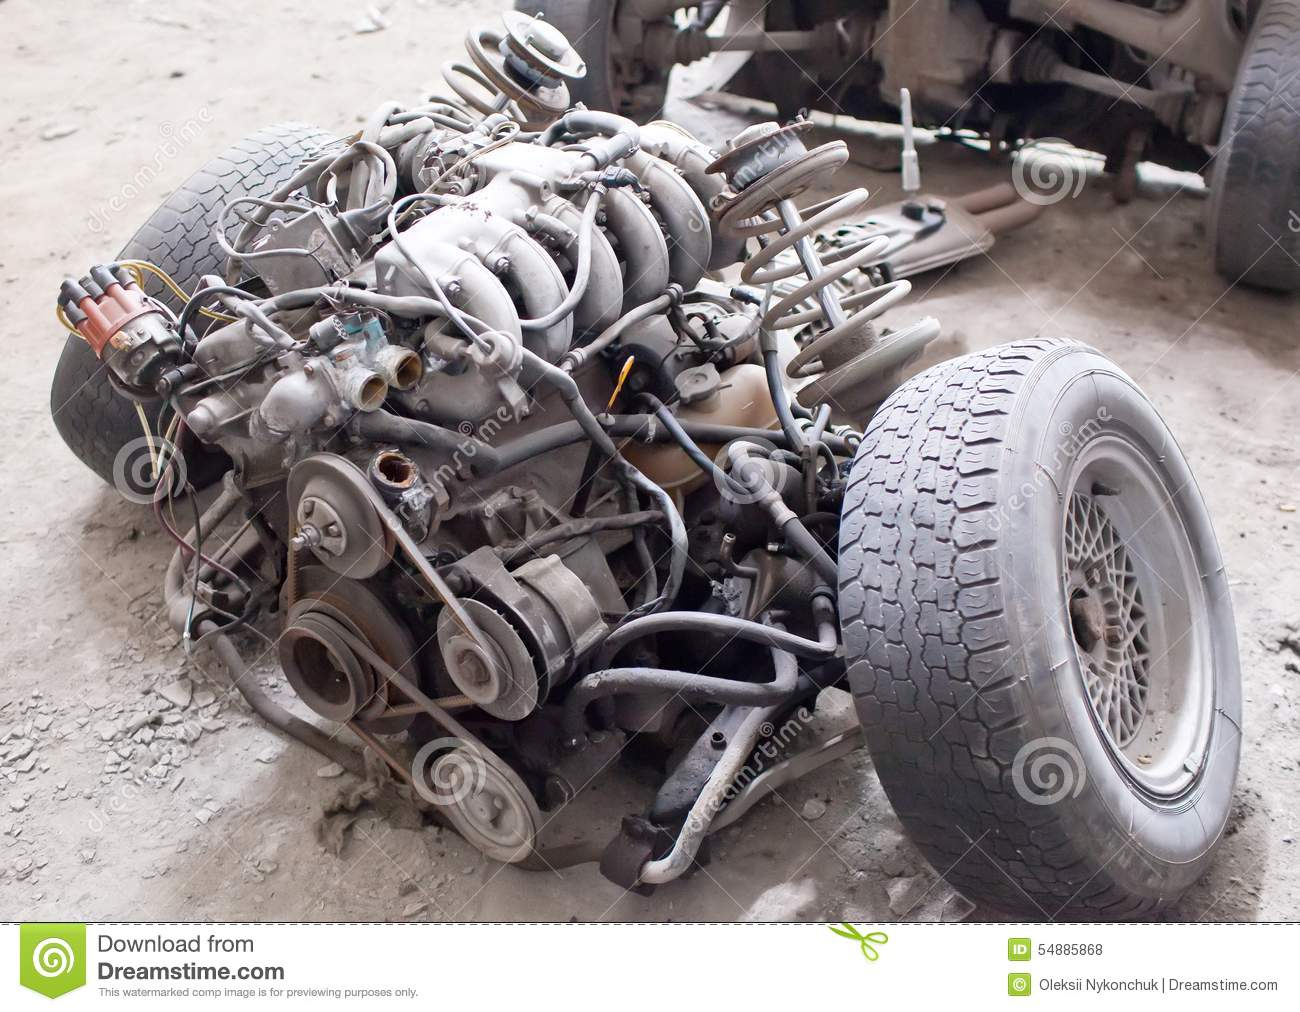 Old Sports 6-cylinder Car Engine Stock Photo - Image of parts, auto ...